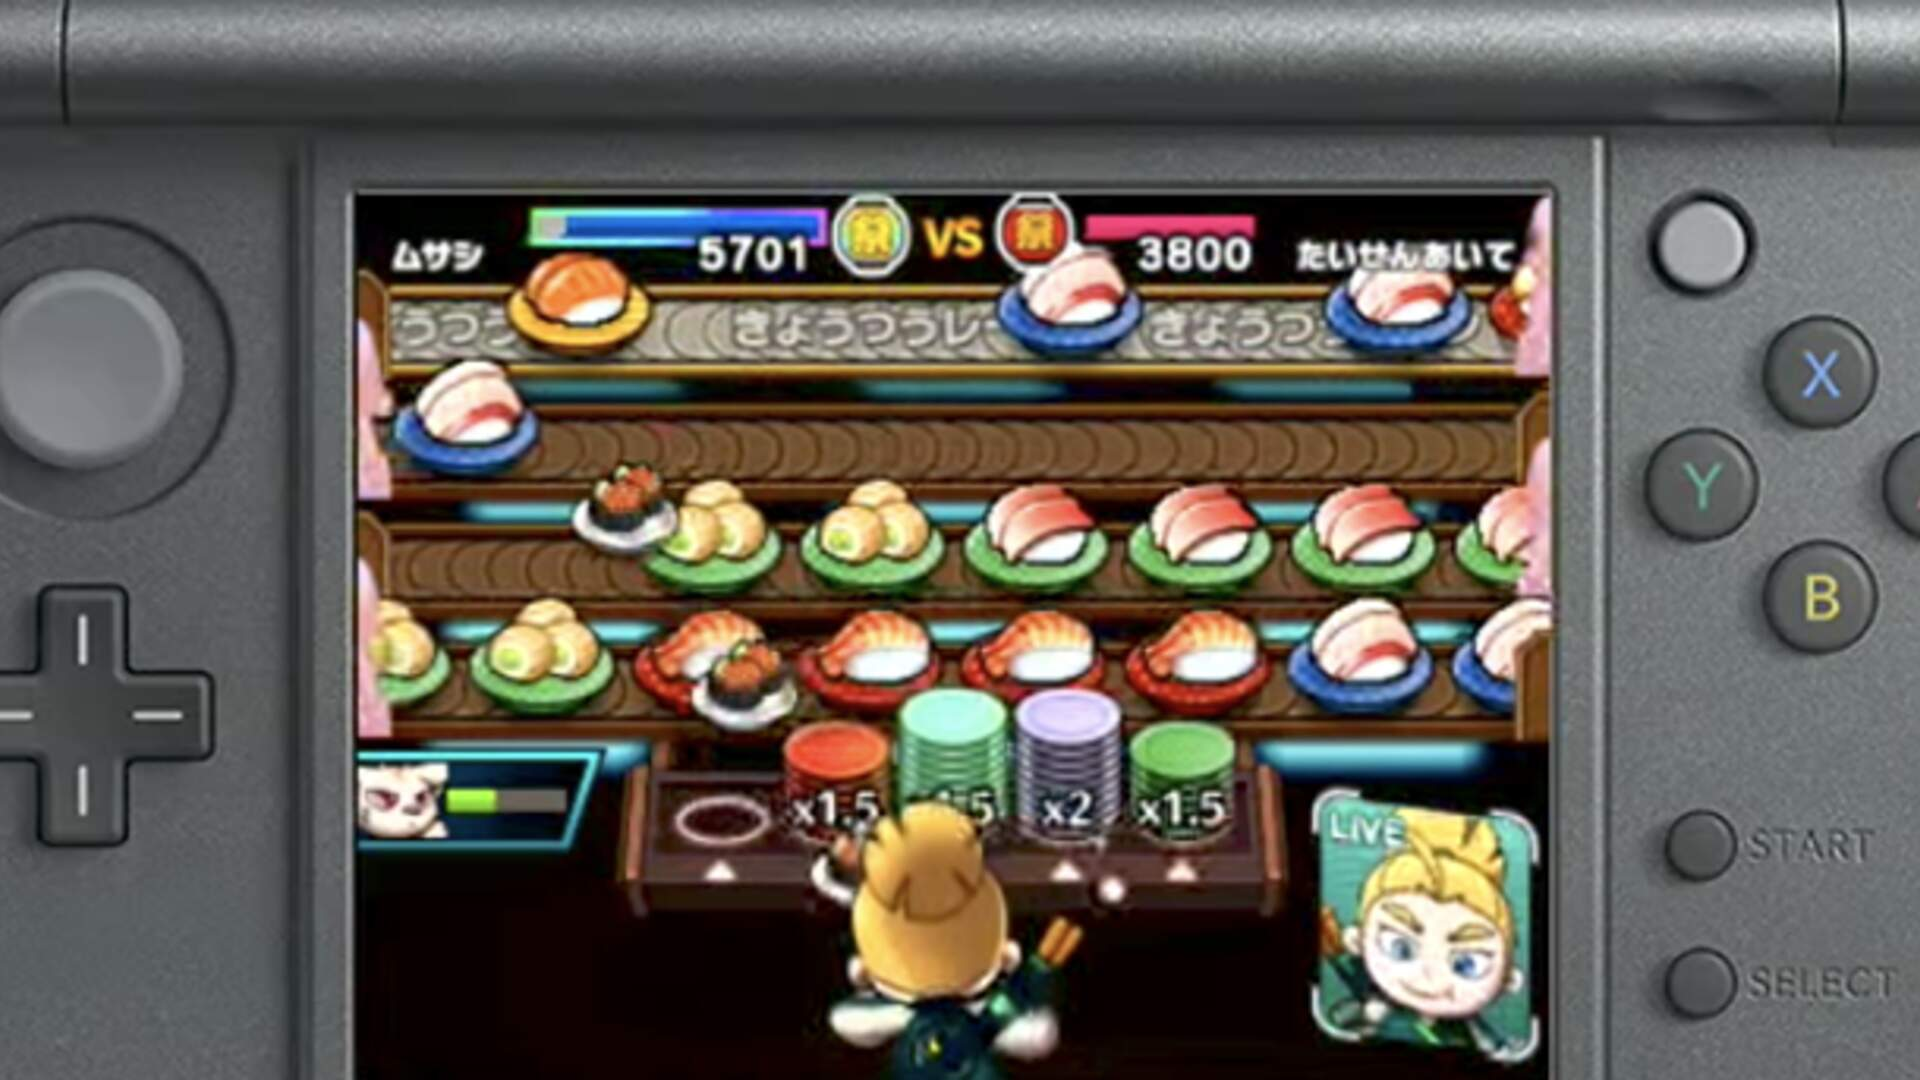 Sushi Striker: The Way of Sushido Is a Puzzle Action Game for the 3DS About Conveyor Belt Sushi